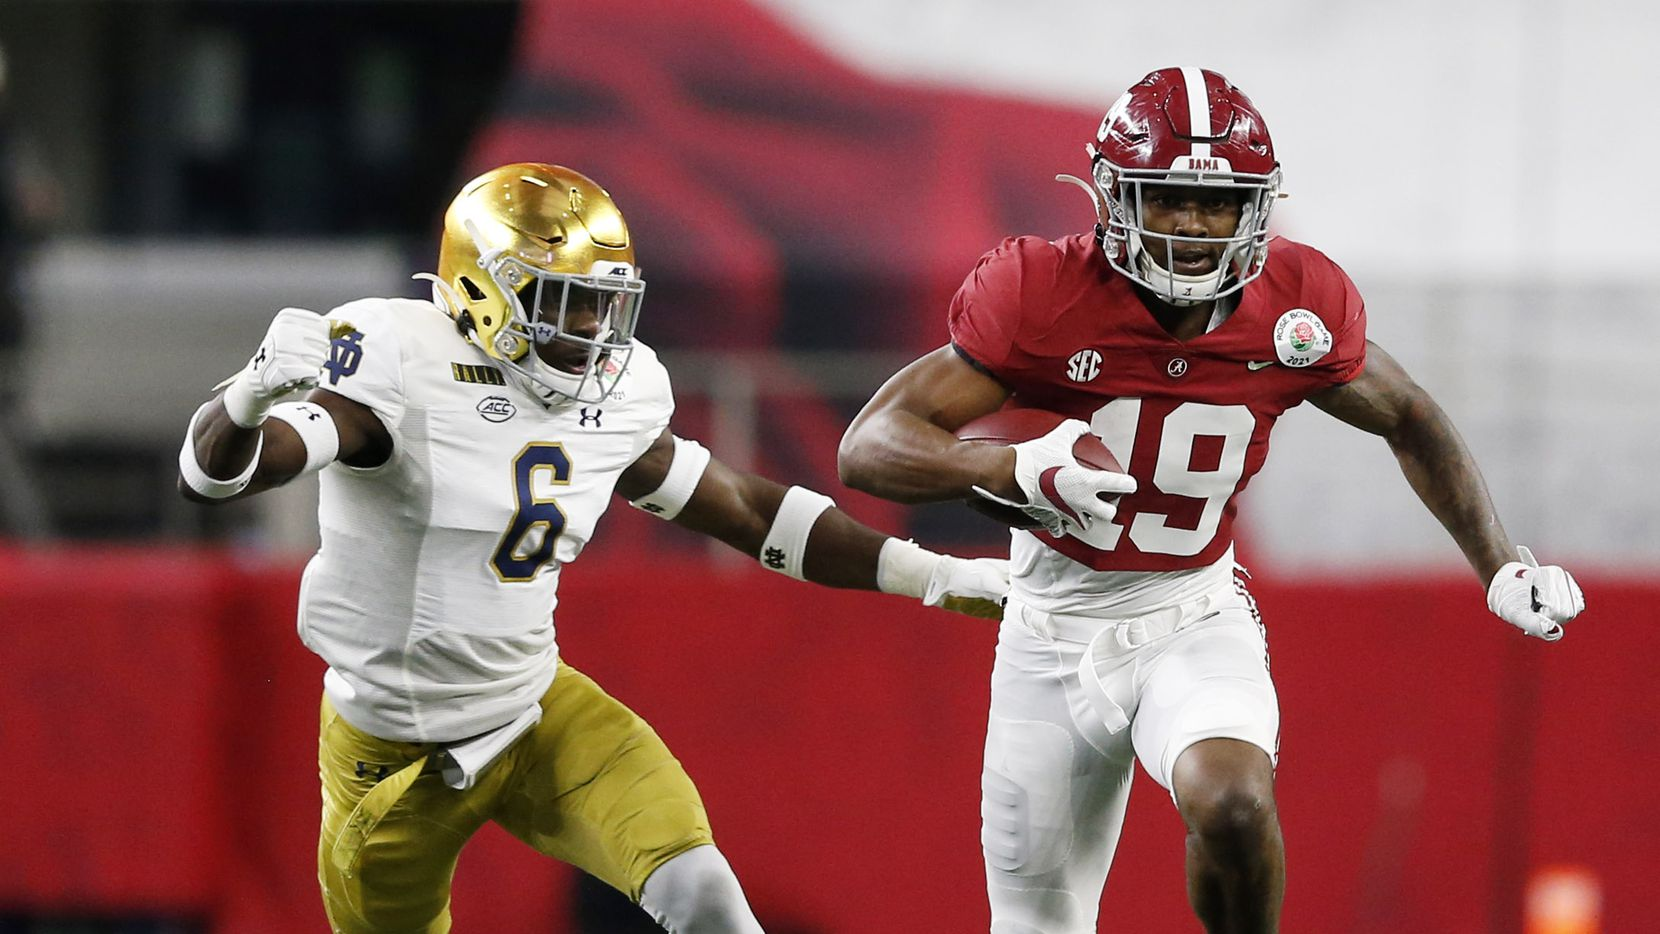 Alabama tight end Jahleel Billingsley (19) runs upfield as Notre Dame linebacker Jeremiah Owusu-Koramoah (6) closes in during the first half of play in the Rose Bowl CFP semifinal at AT&T Stadium on Friday, Dec. 30, 2020, in Arlington.